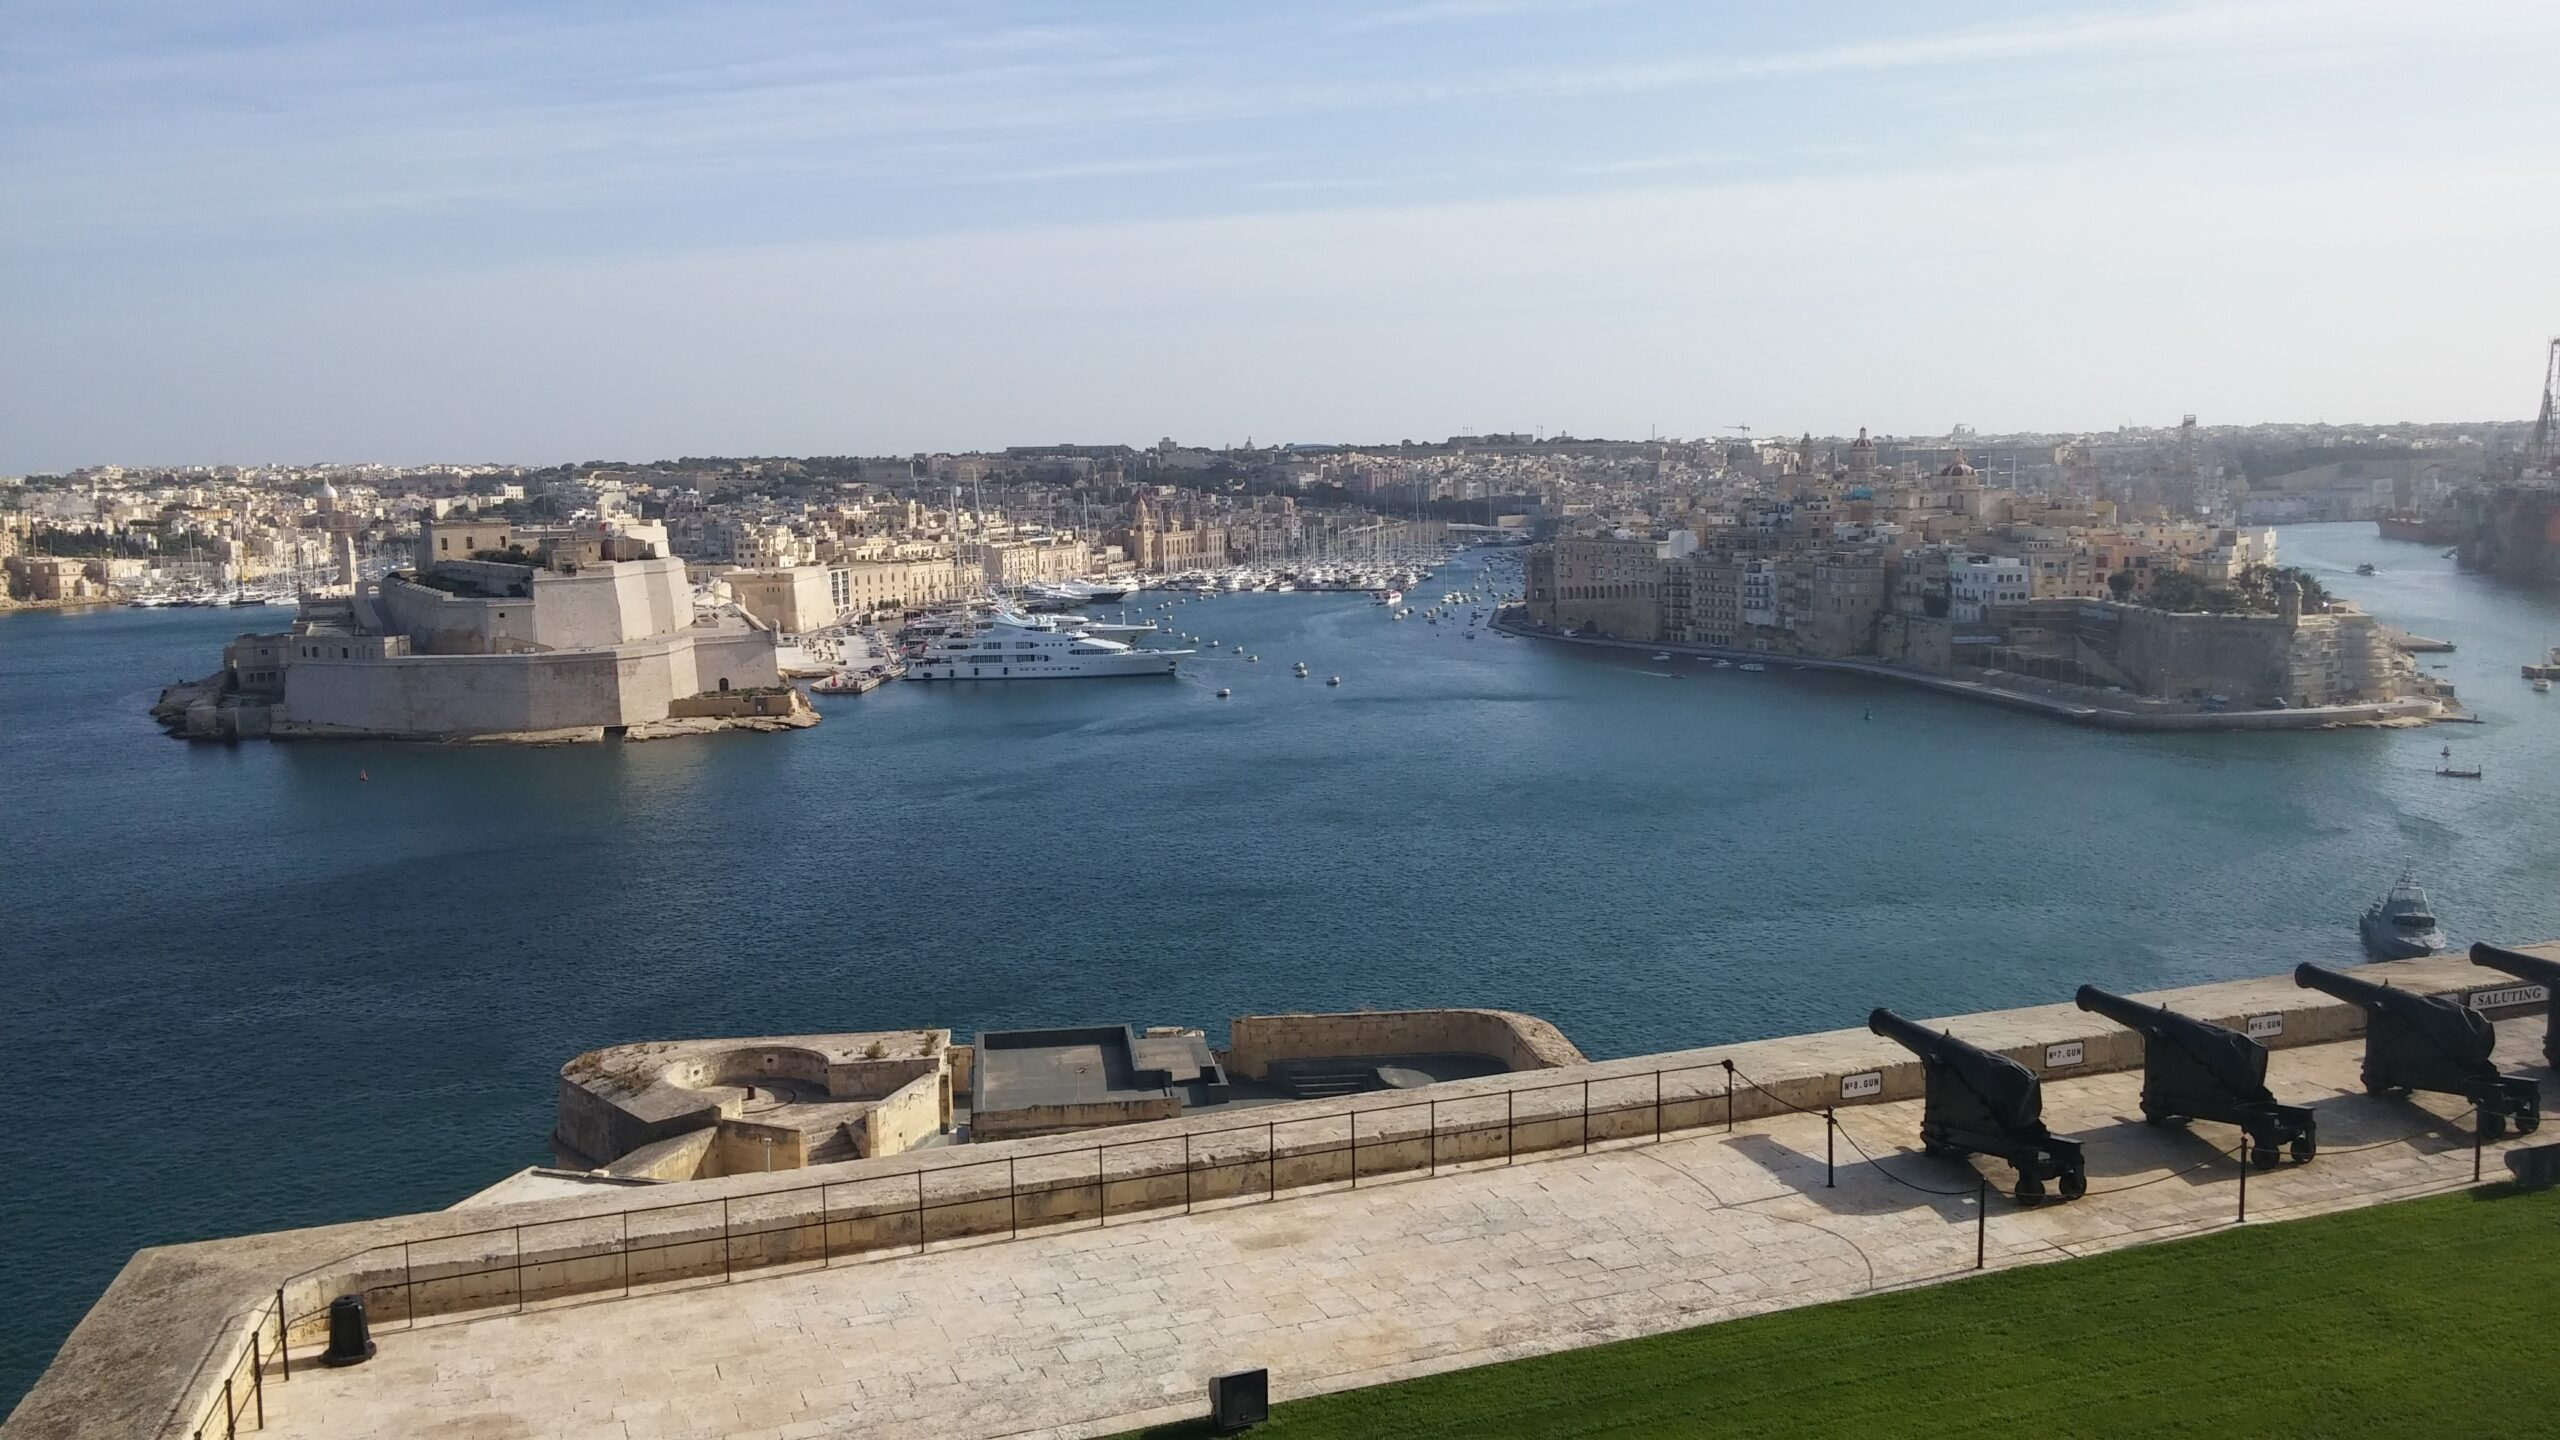 Valletta the capital of Malta offers some beautiful scenery